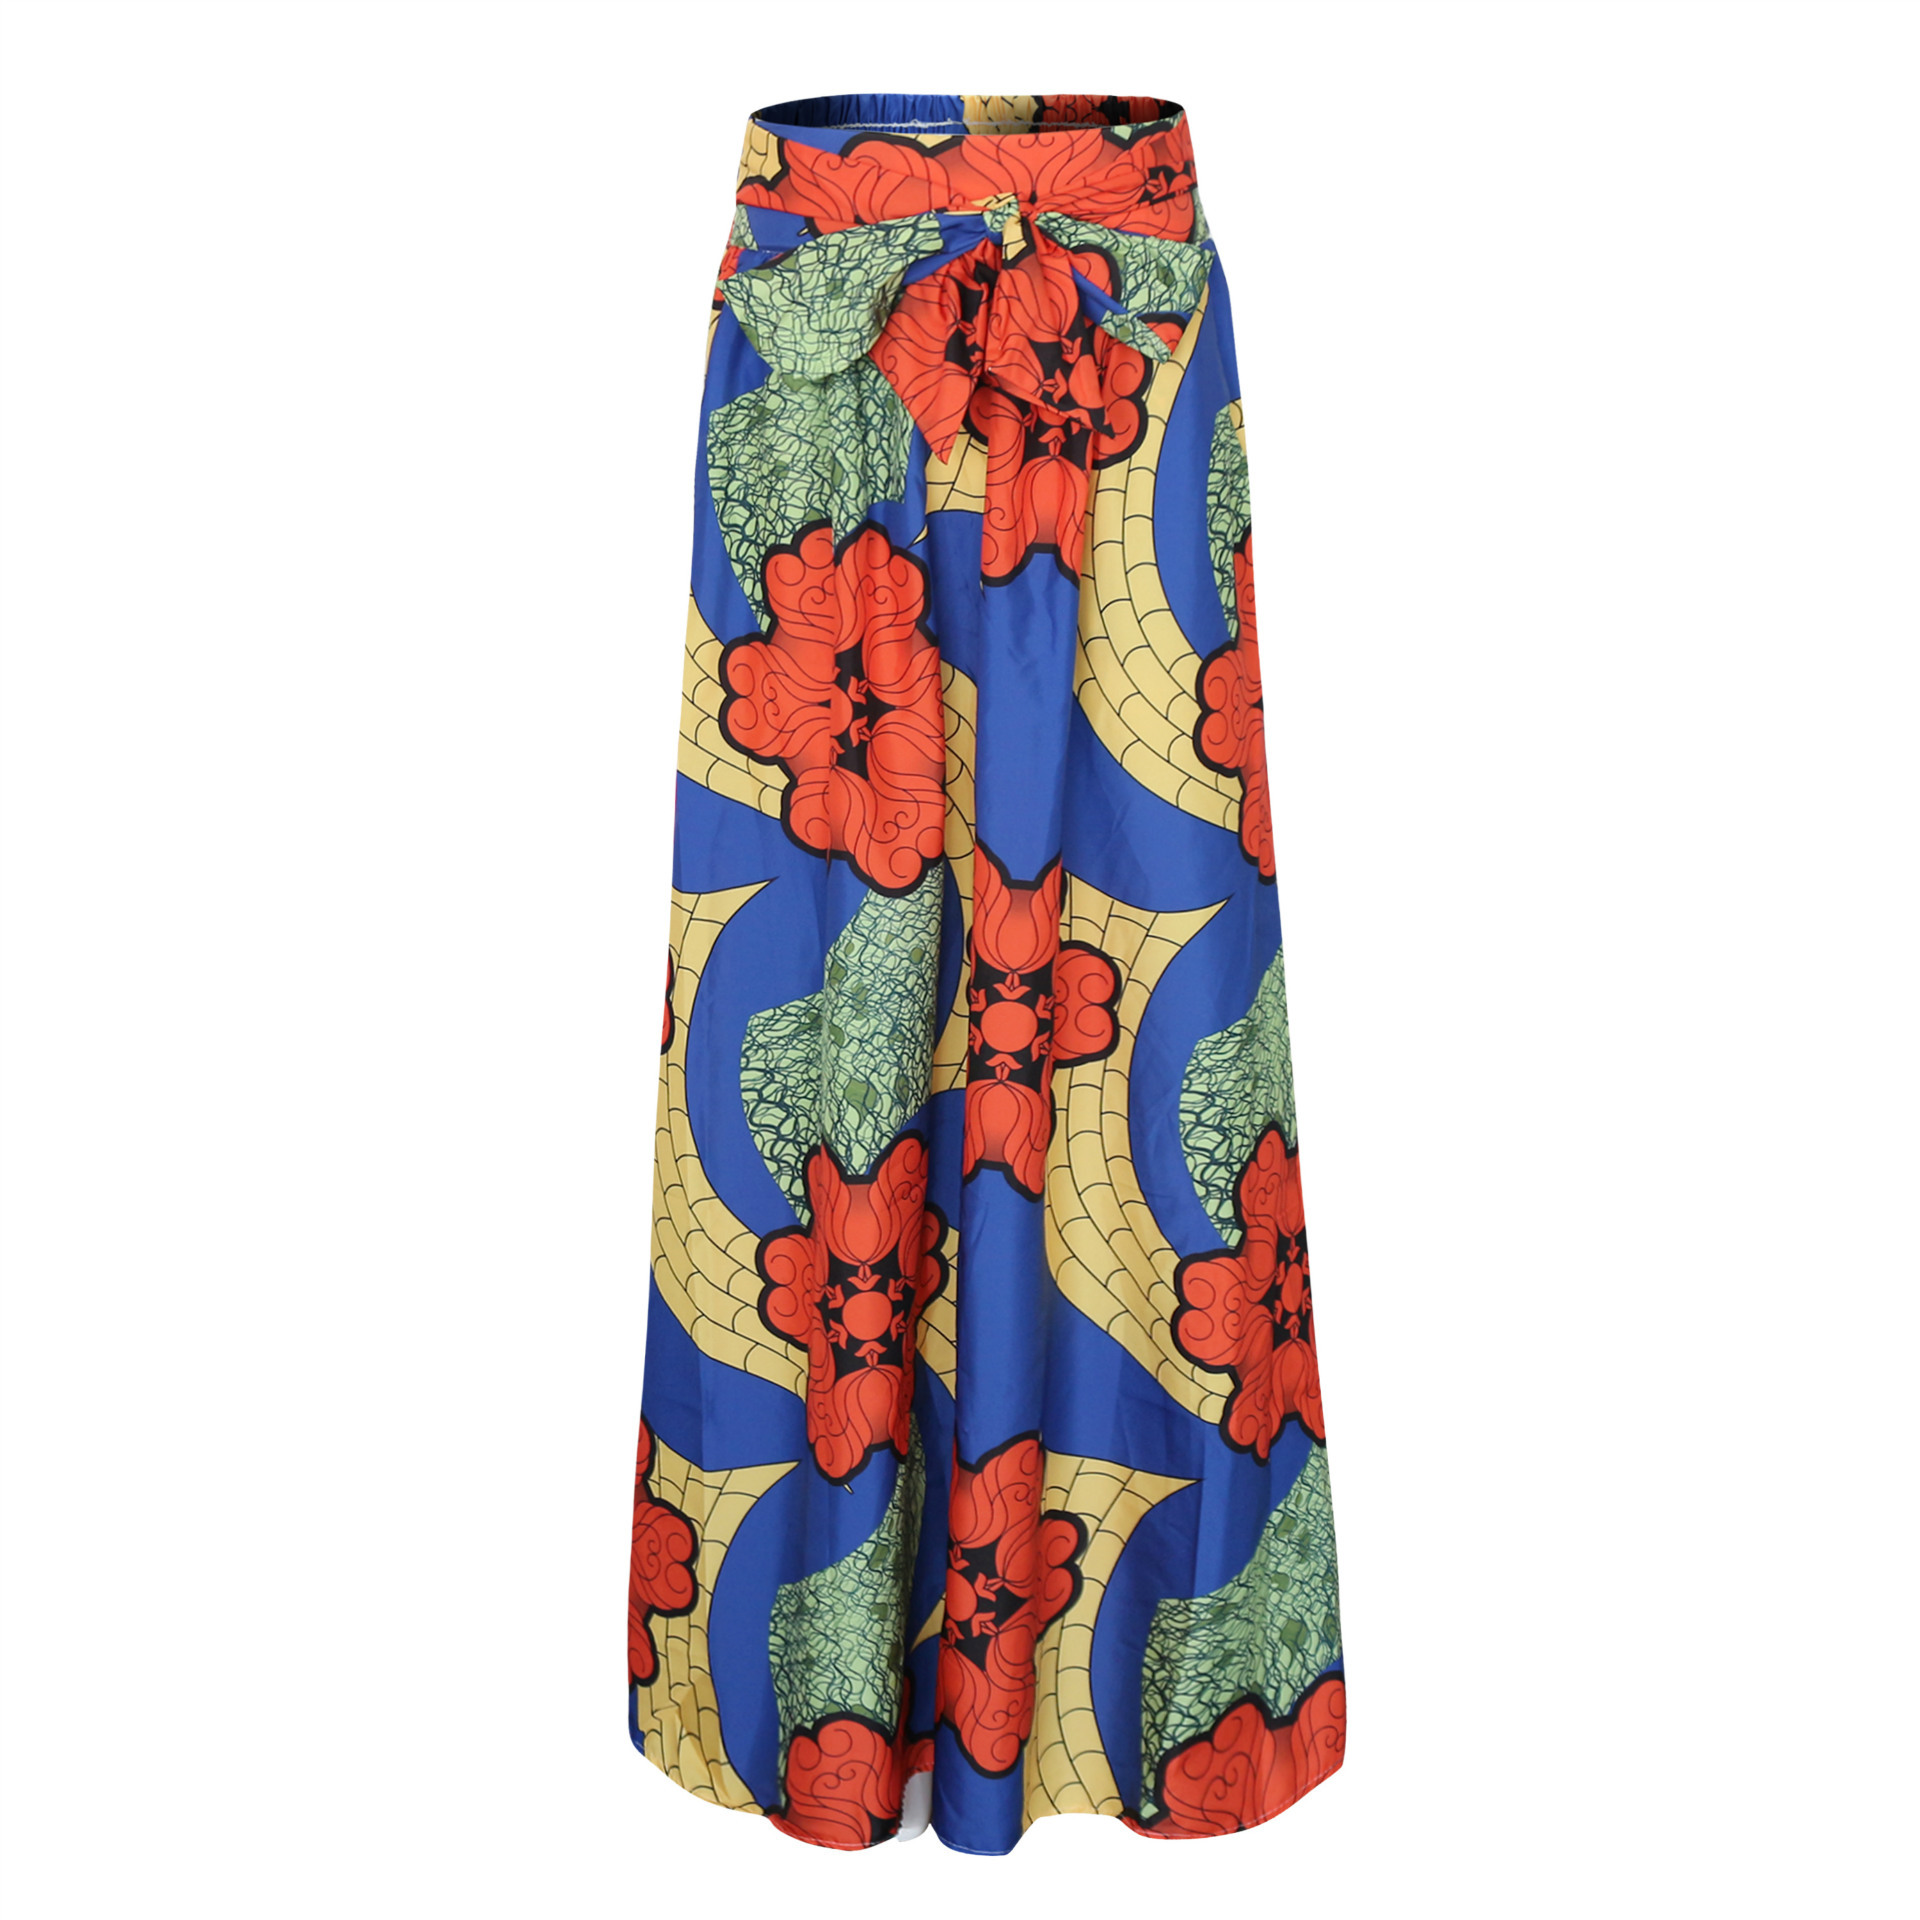 09c7287e045c6 US $35.0 |Plus Size Africa Clothes 5XL Indonesia Ankara Indian African  Pattern Print Women Summer Autumn Skirt Fashion Bandage Long Skirts-in  Africa ...